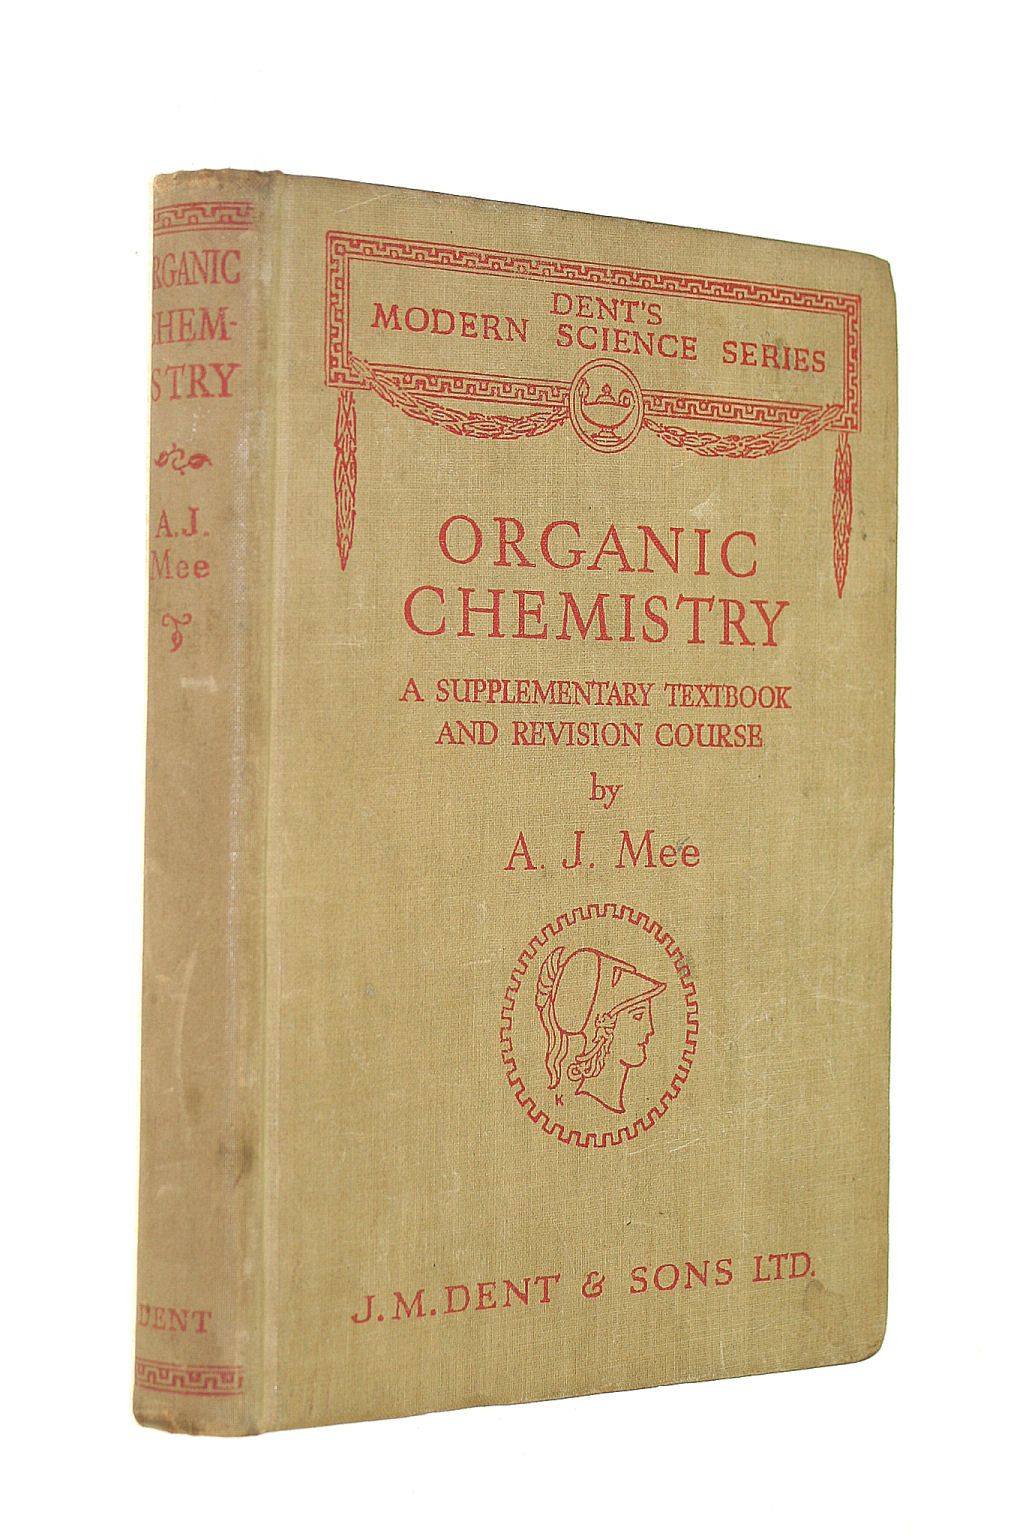 Image for Organic Chemistry (Dents Modern Science Series)